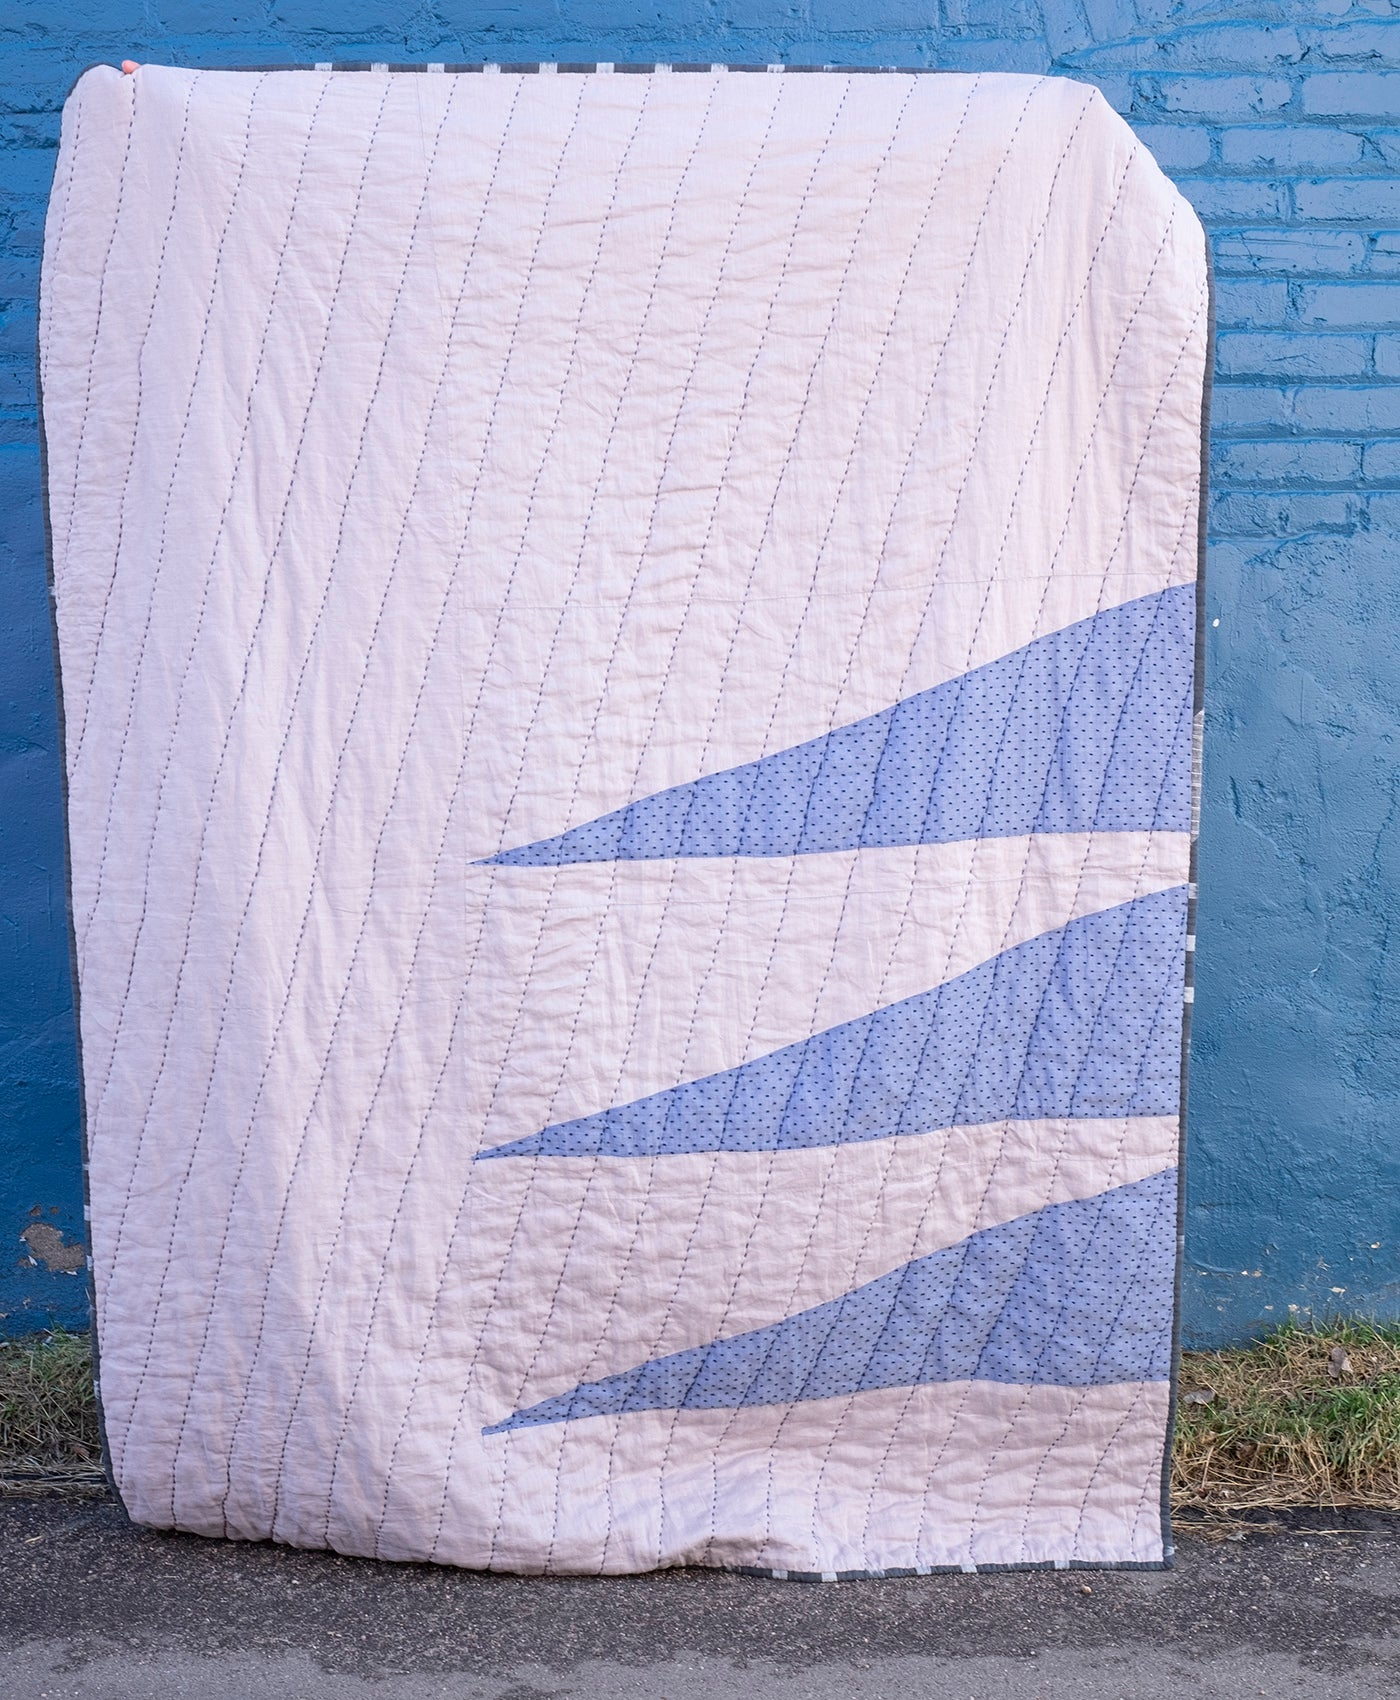 Quilt in darker sky blue with navy fuzzy dots on the chambray in triangles.  These blue triangles are on a gray fabric. Quilt is being held up vertically with the triangles on the right side.  Background is a dark blue brick wall.